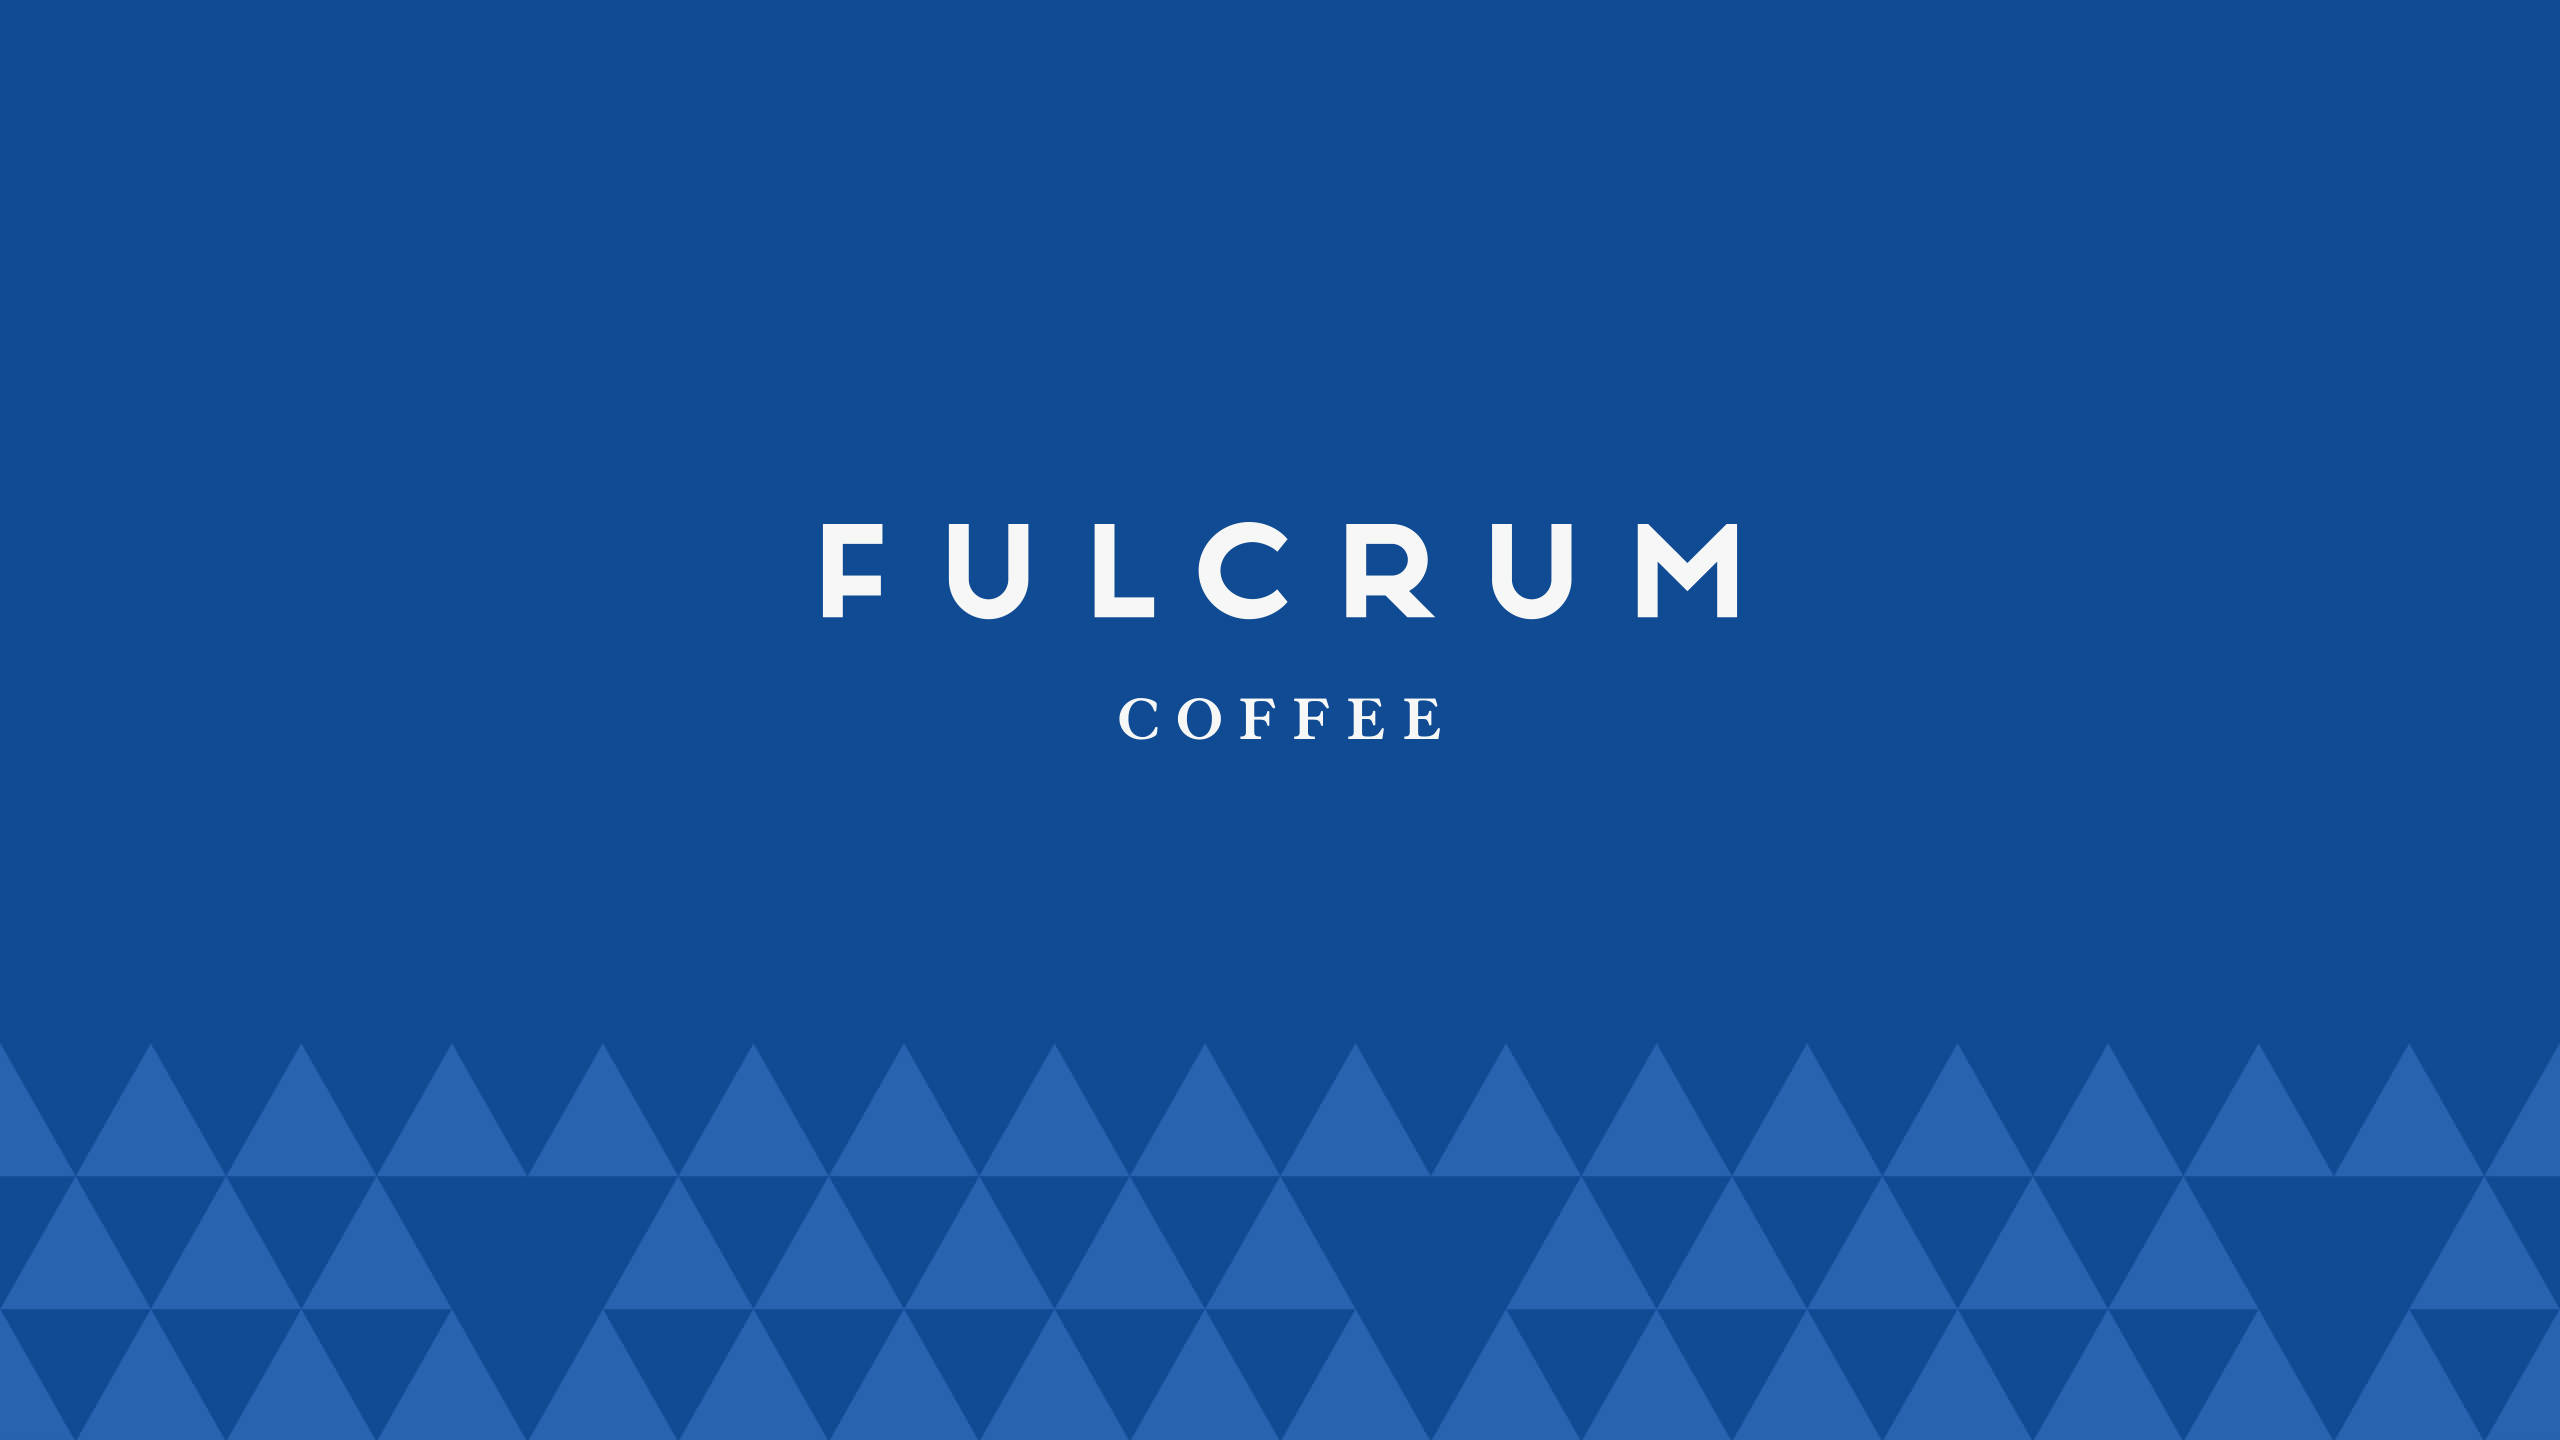 tolleson-case-study-fulcrum-coffee-01